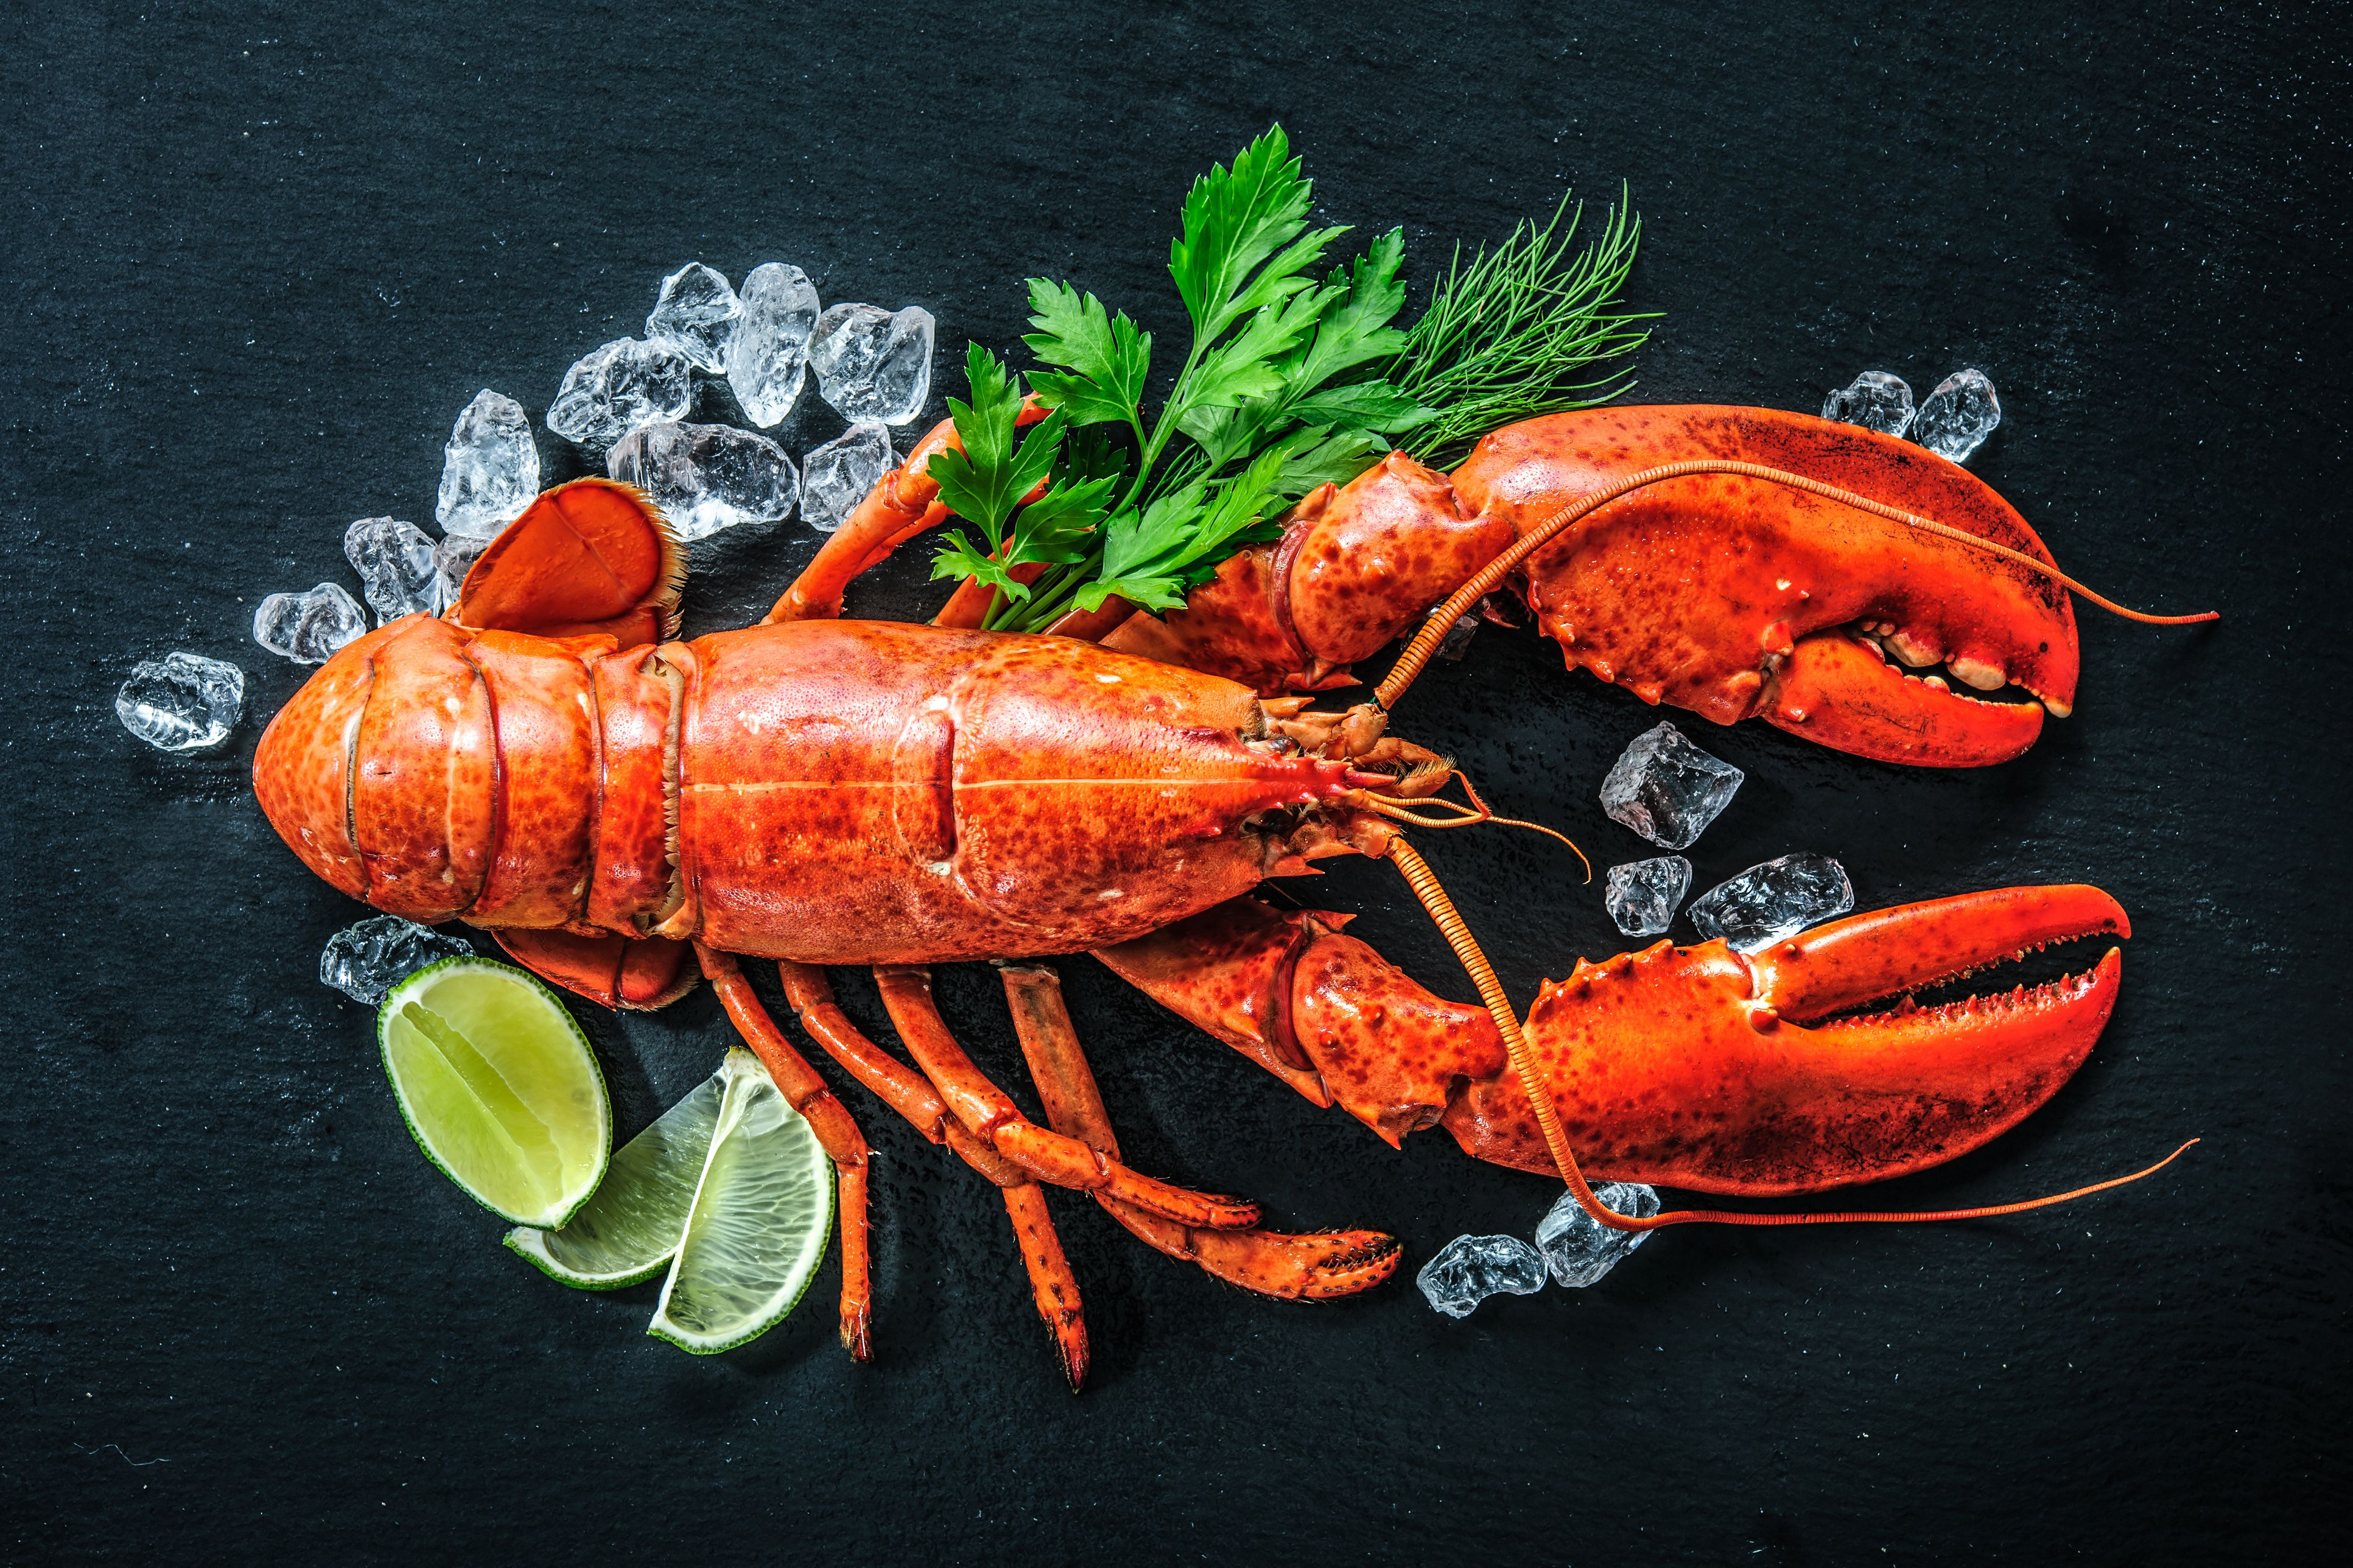 Boiling a live lobster isn't the most human way to kill it.